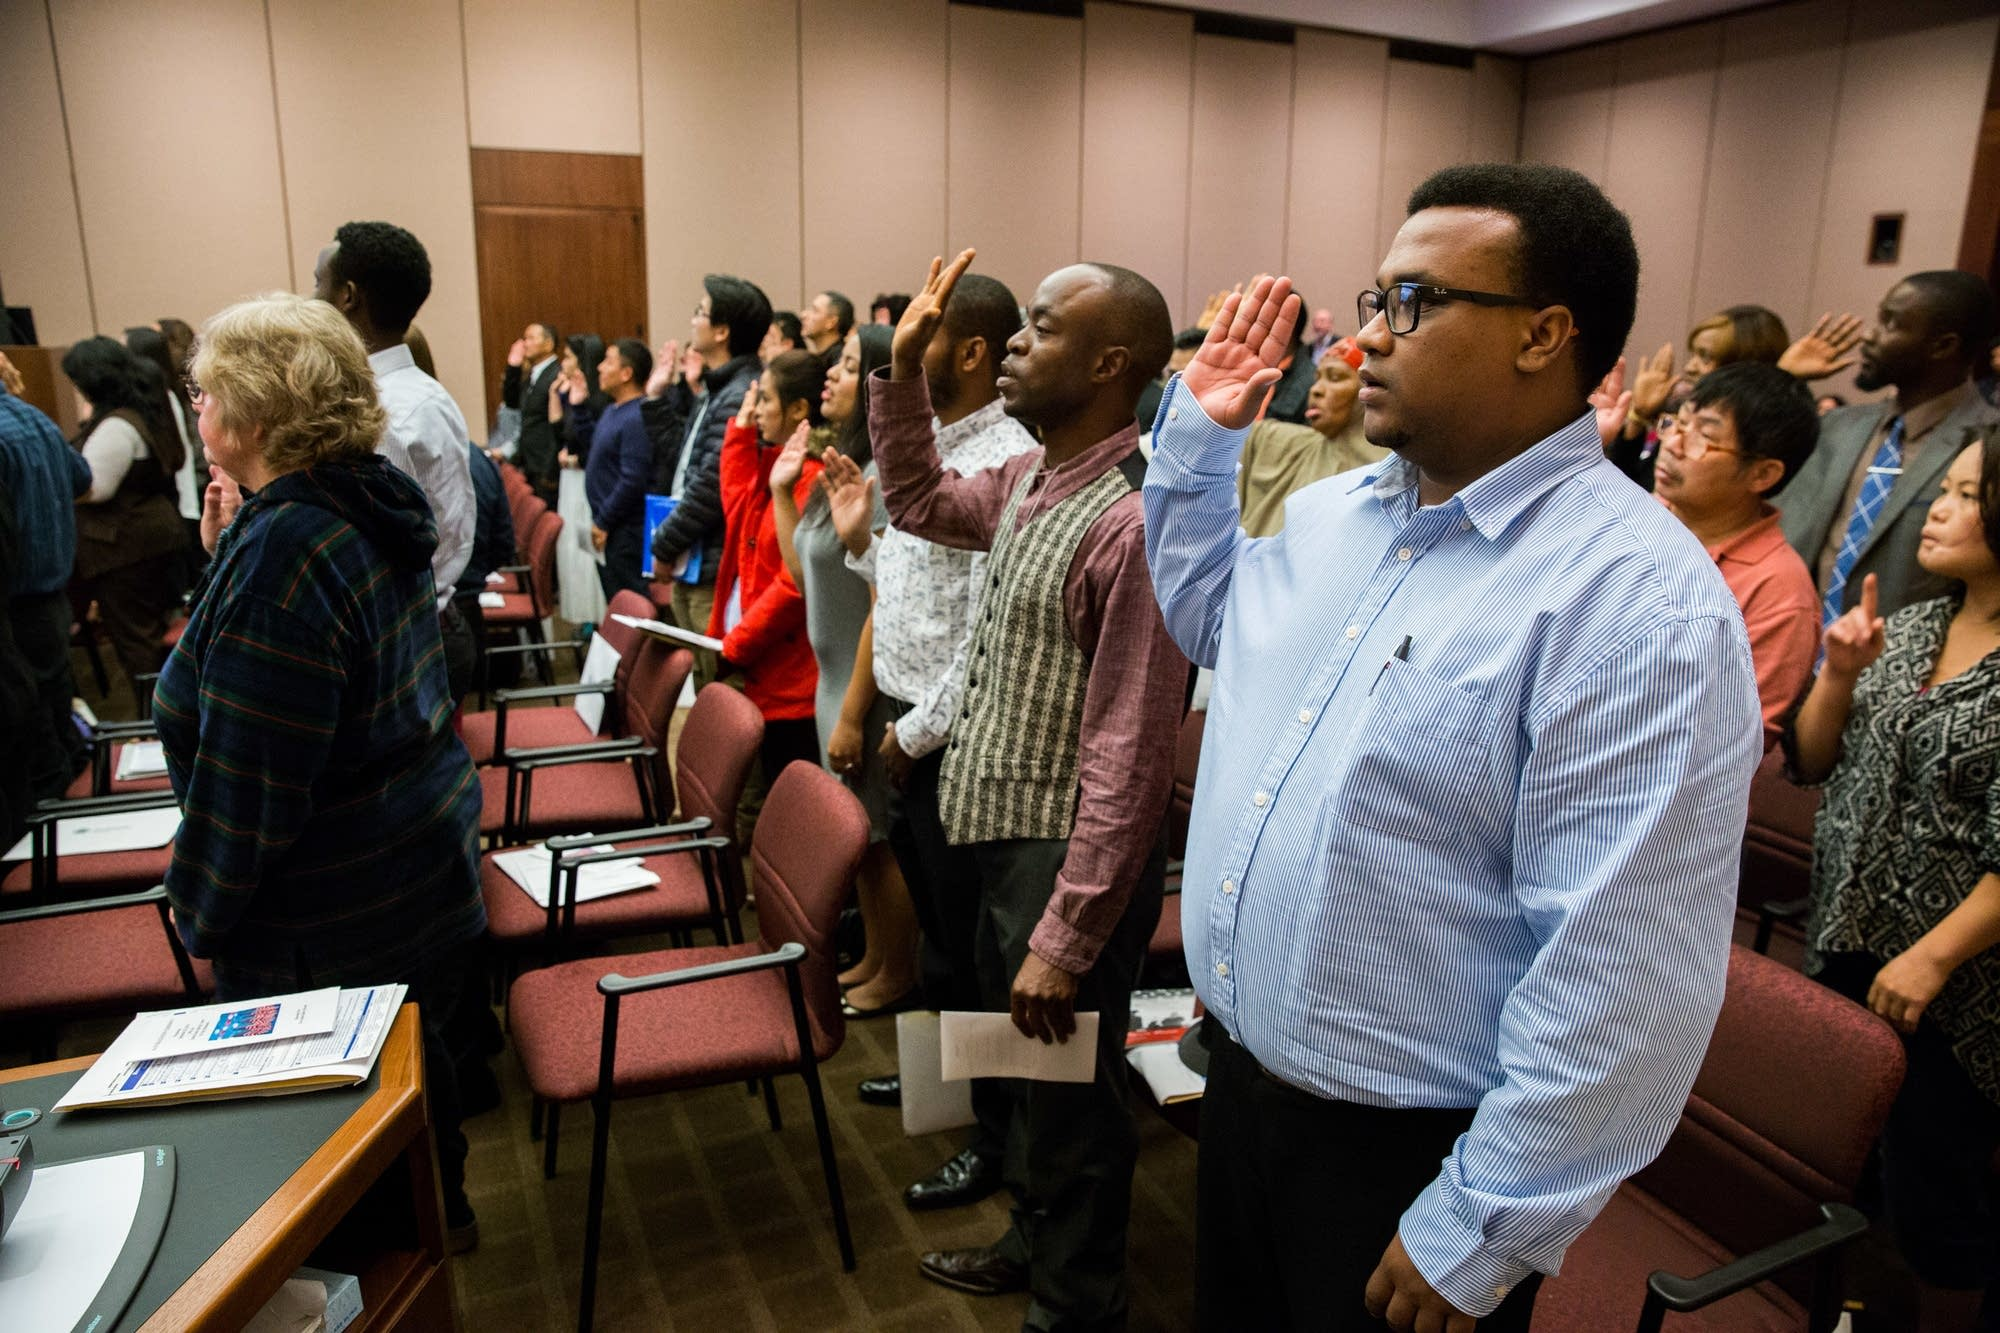 New citizens recite the pledge of allegiance.